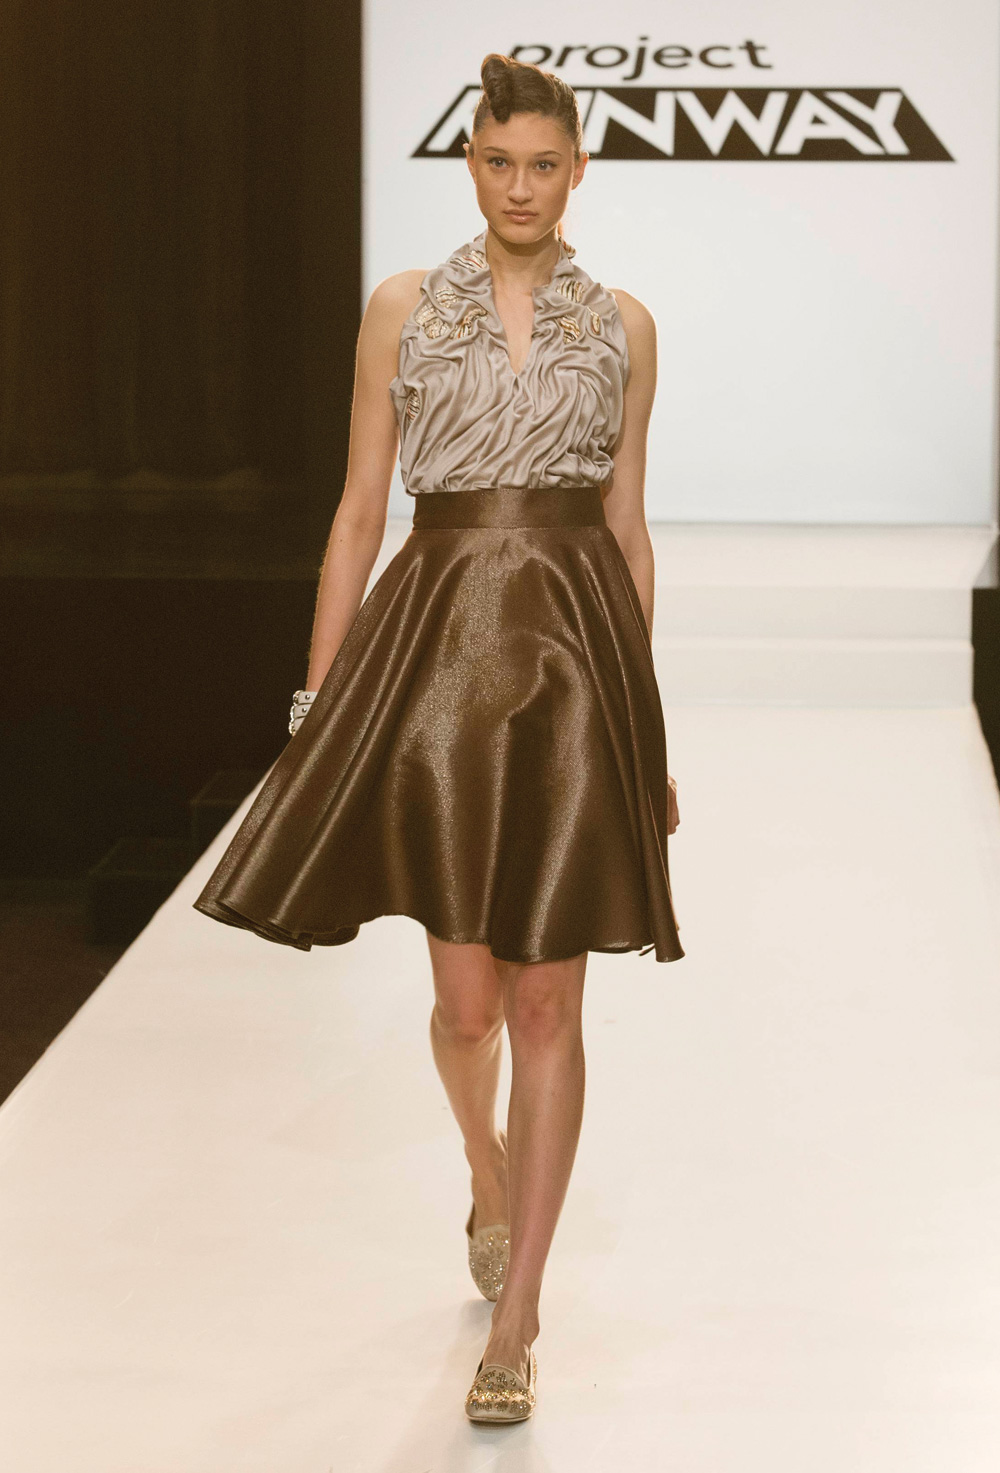 Tirare le fila: Project Runway, Season 12, Episode 7: Inside Mary ... for Drapes In Garments  575lpg